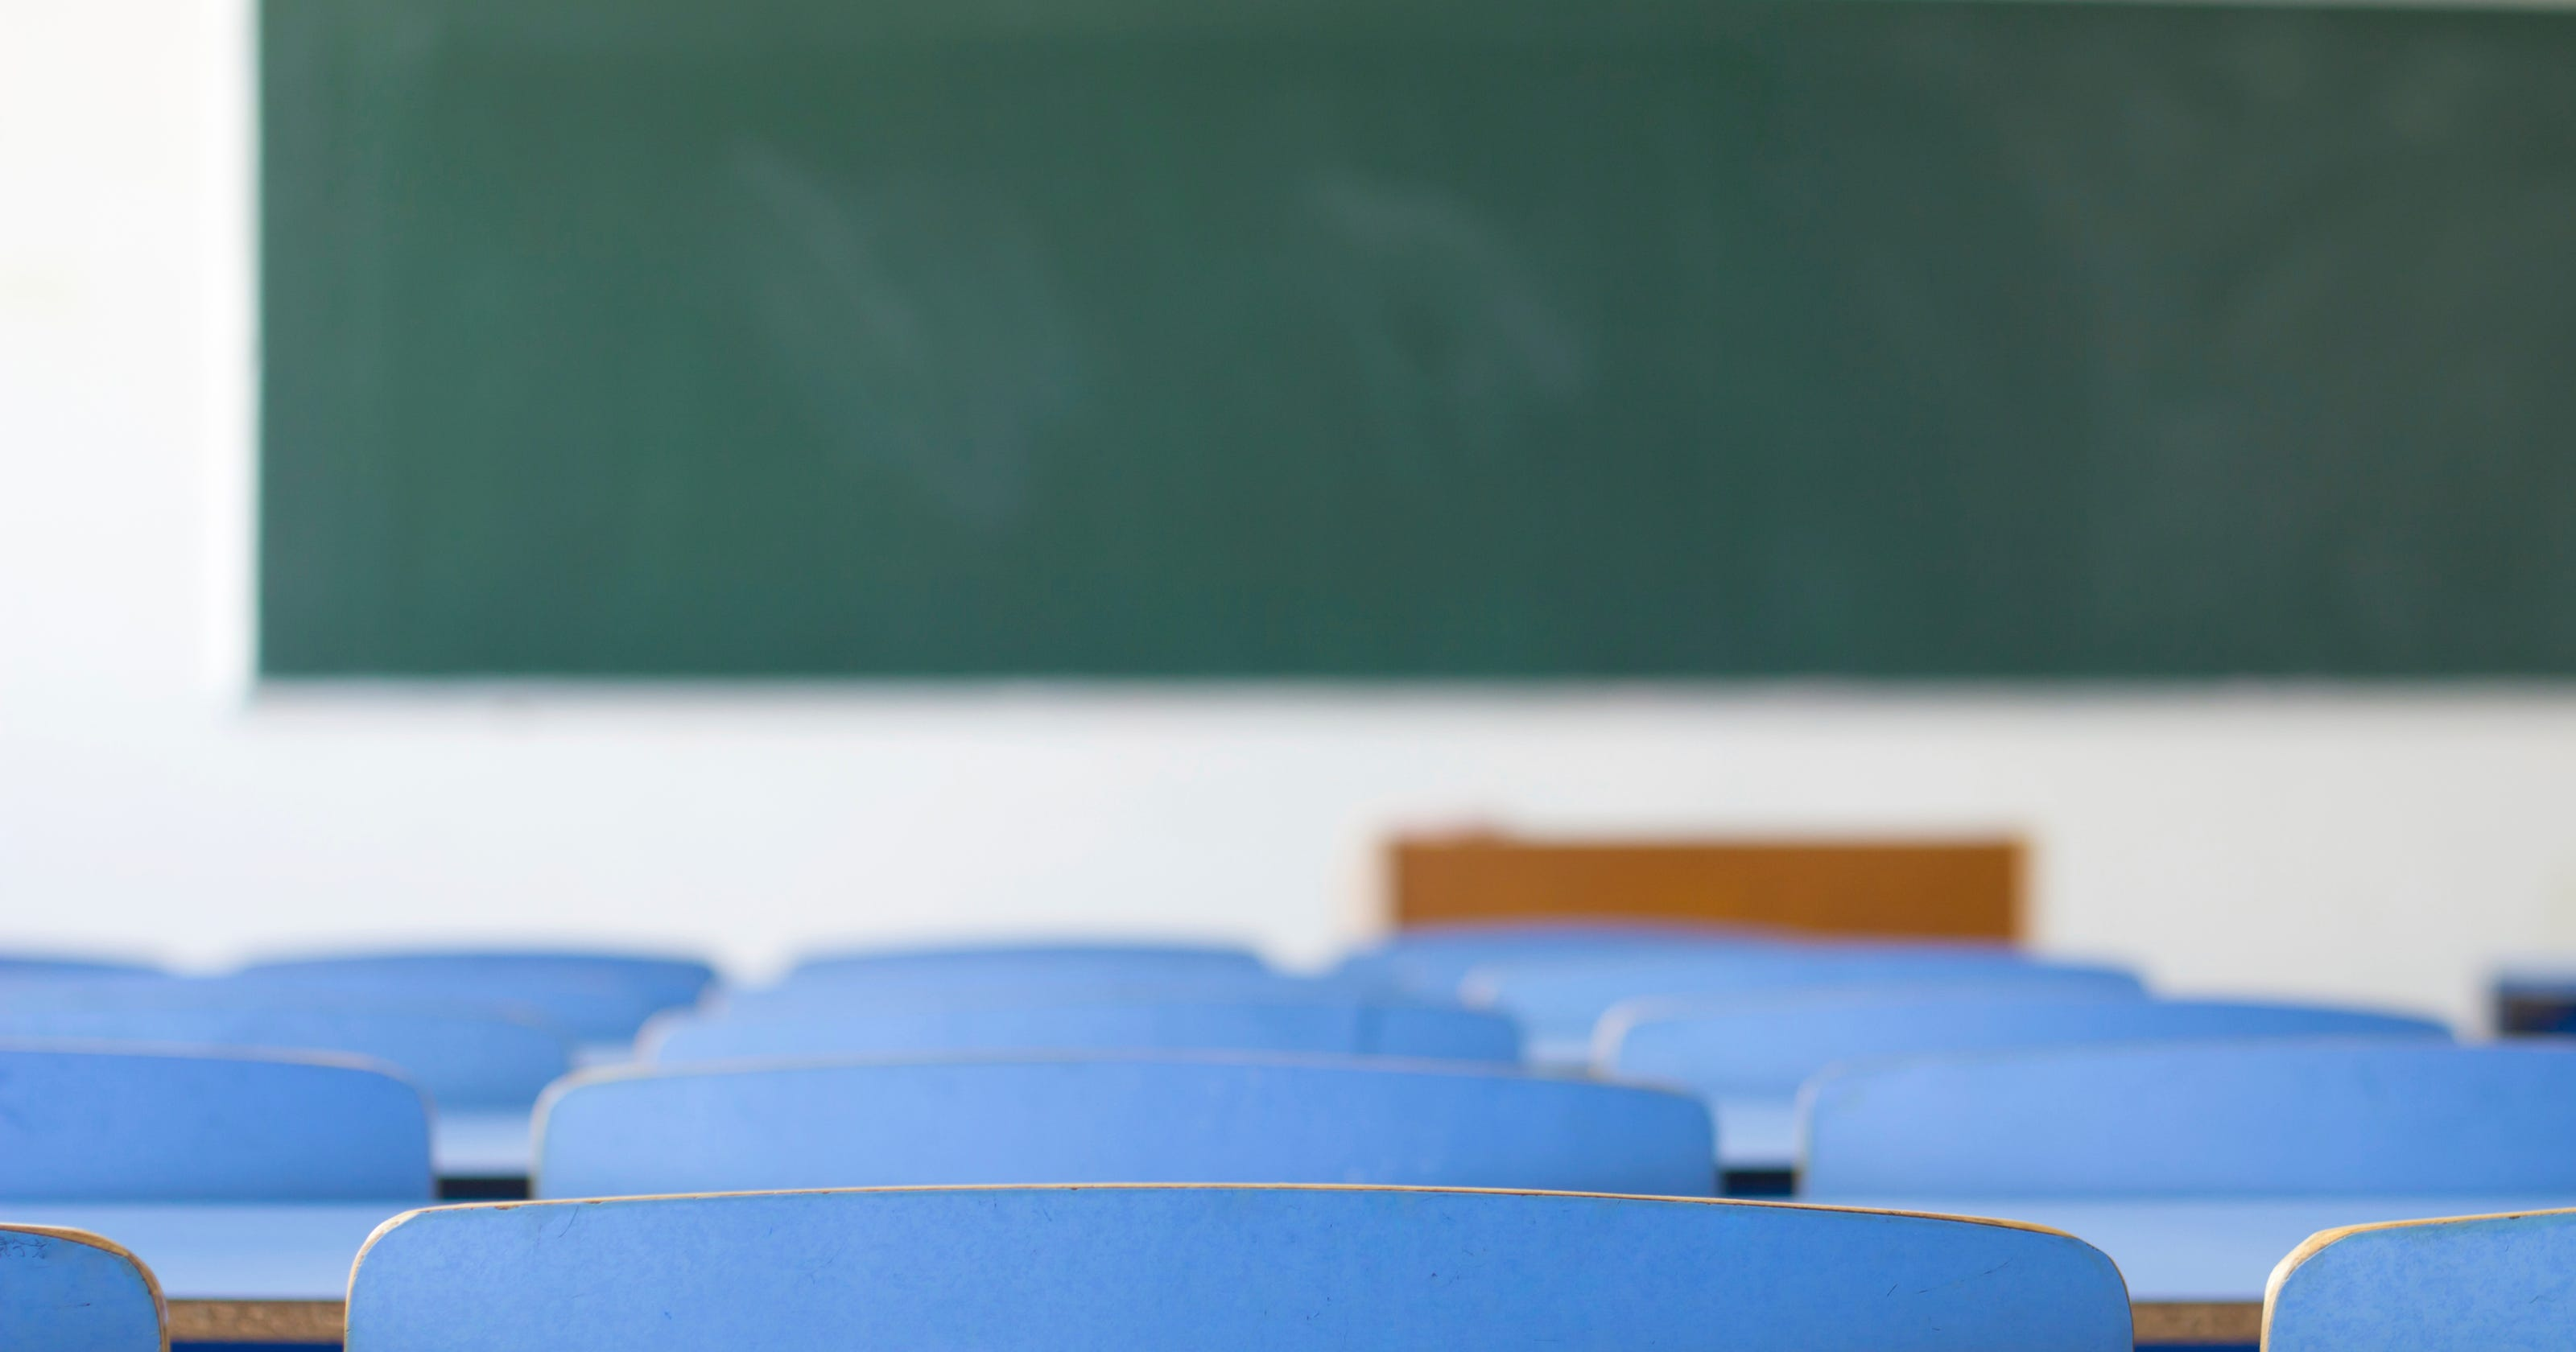 Special Education Costs Force Some >> Special Education Task Force Calls For Reforms To Cut Costs